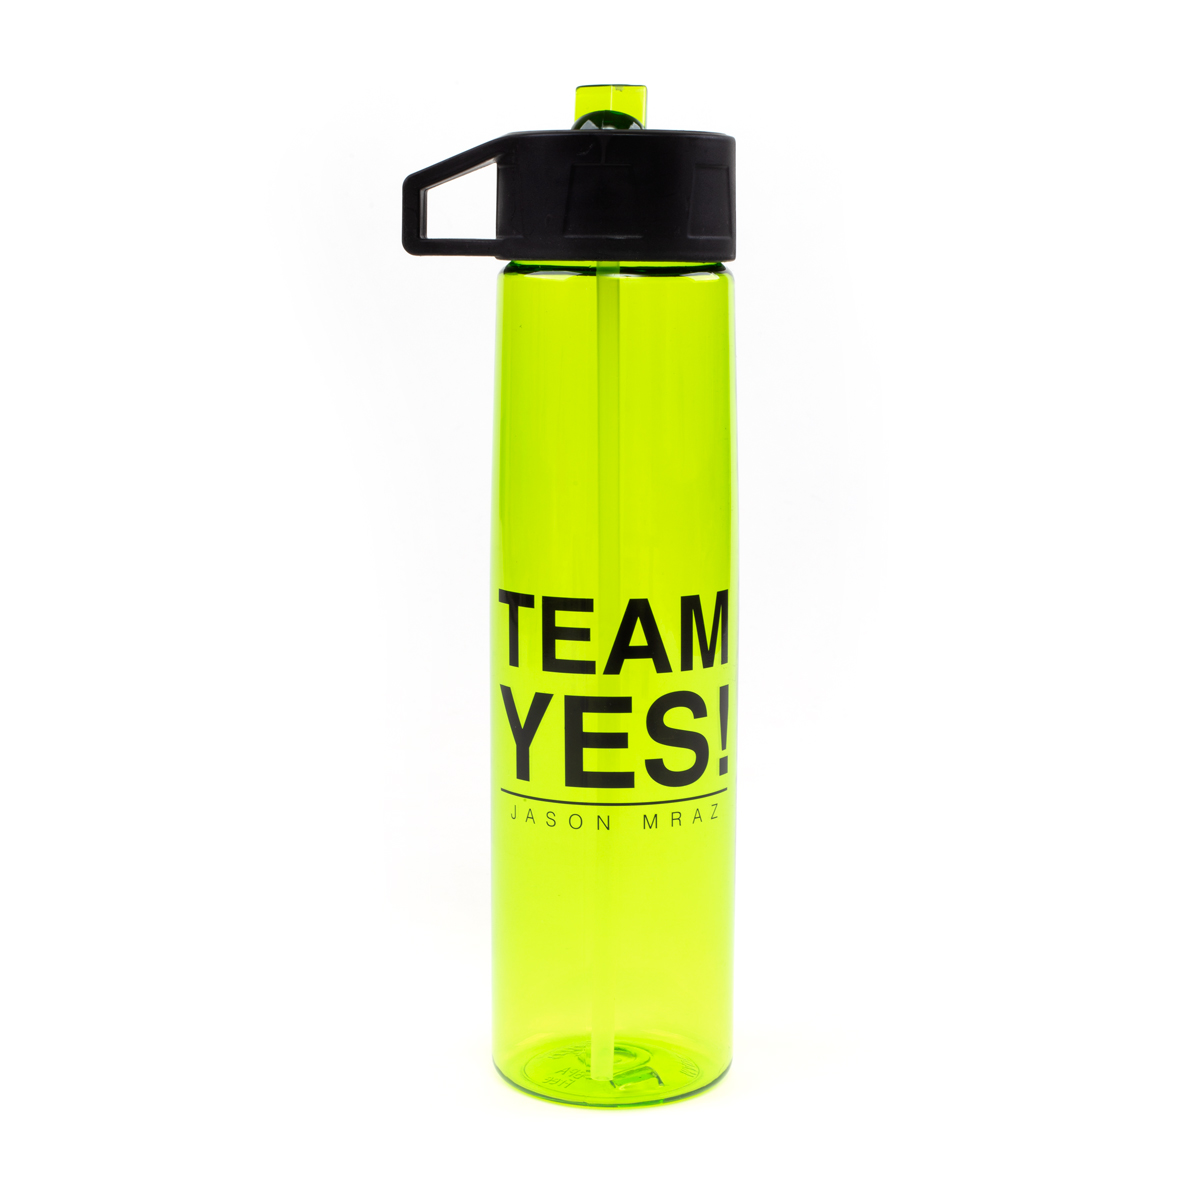 Team YES! Water Bottle